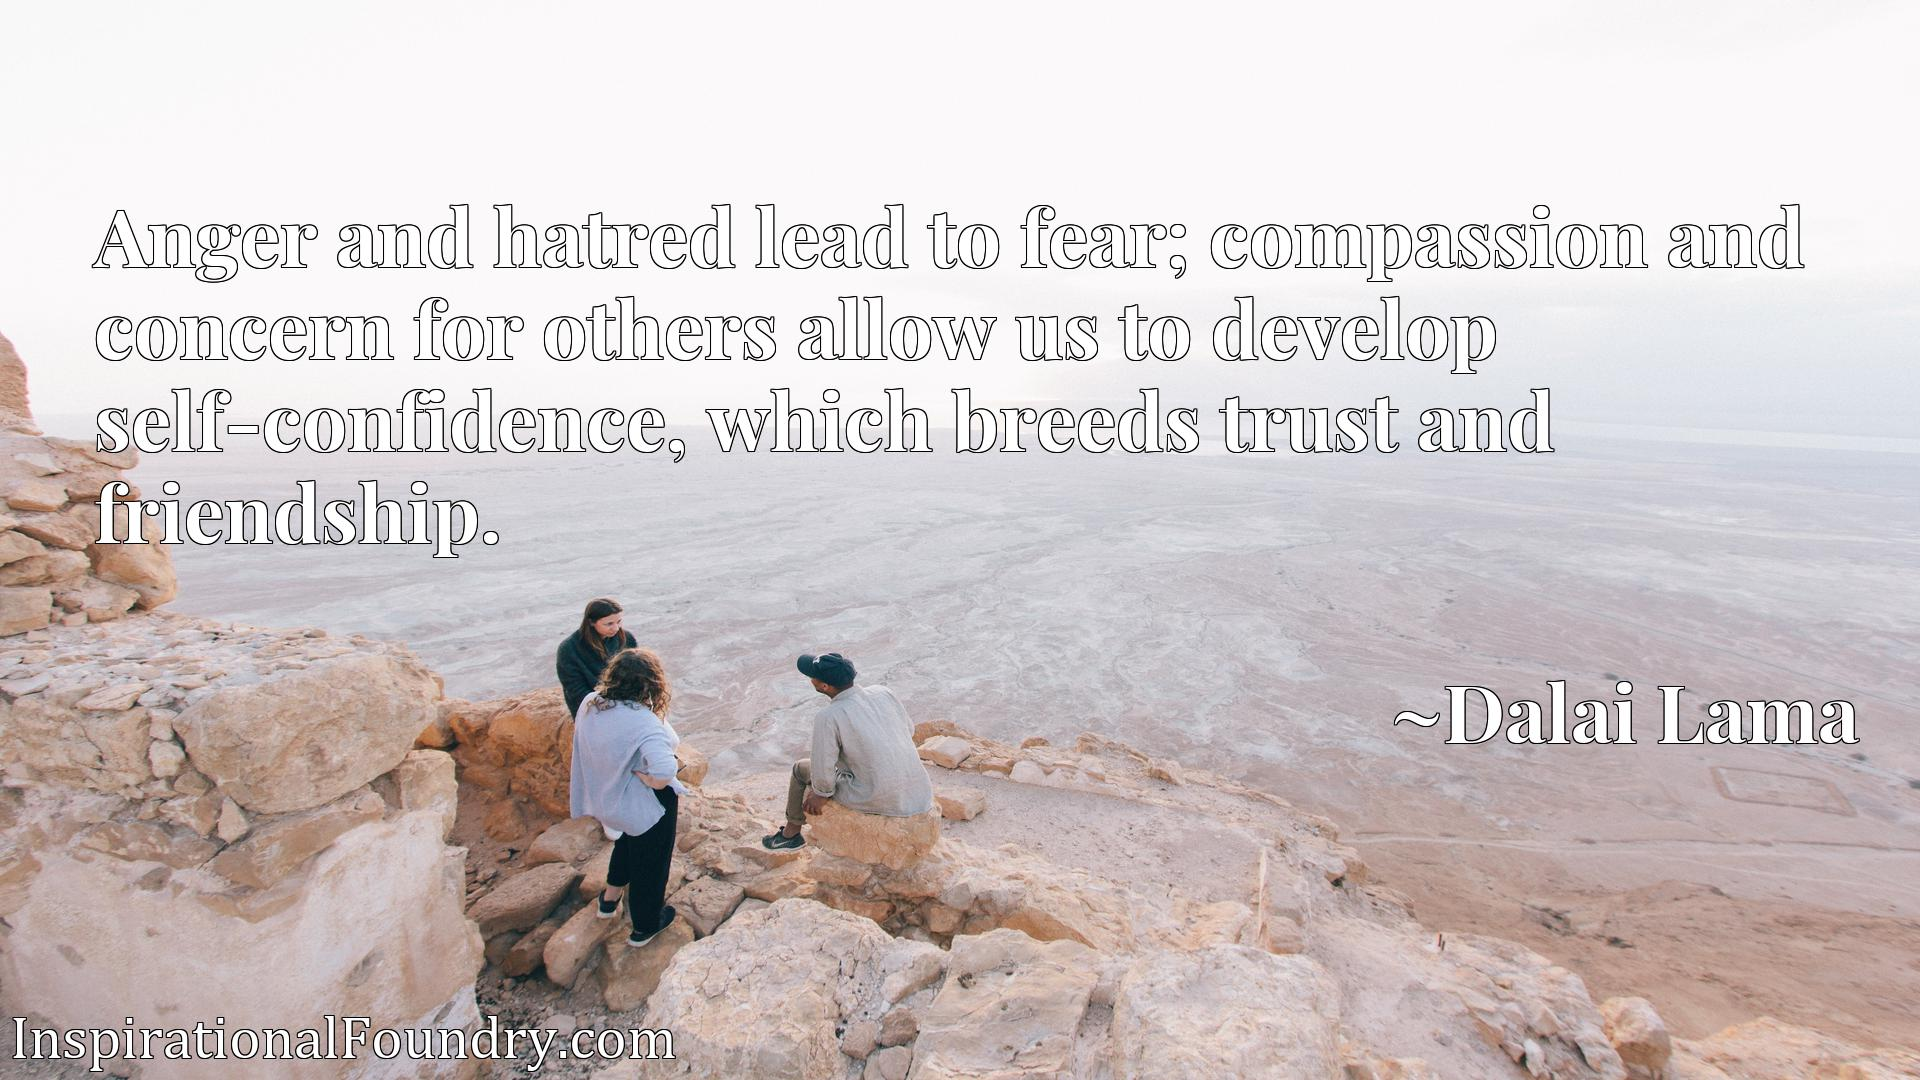 Anger and hatred lead to fear; compassion and concern for others allow us to develop self-confidence, which breeds trust and friendship.